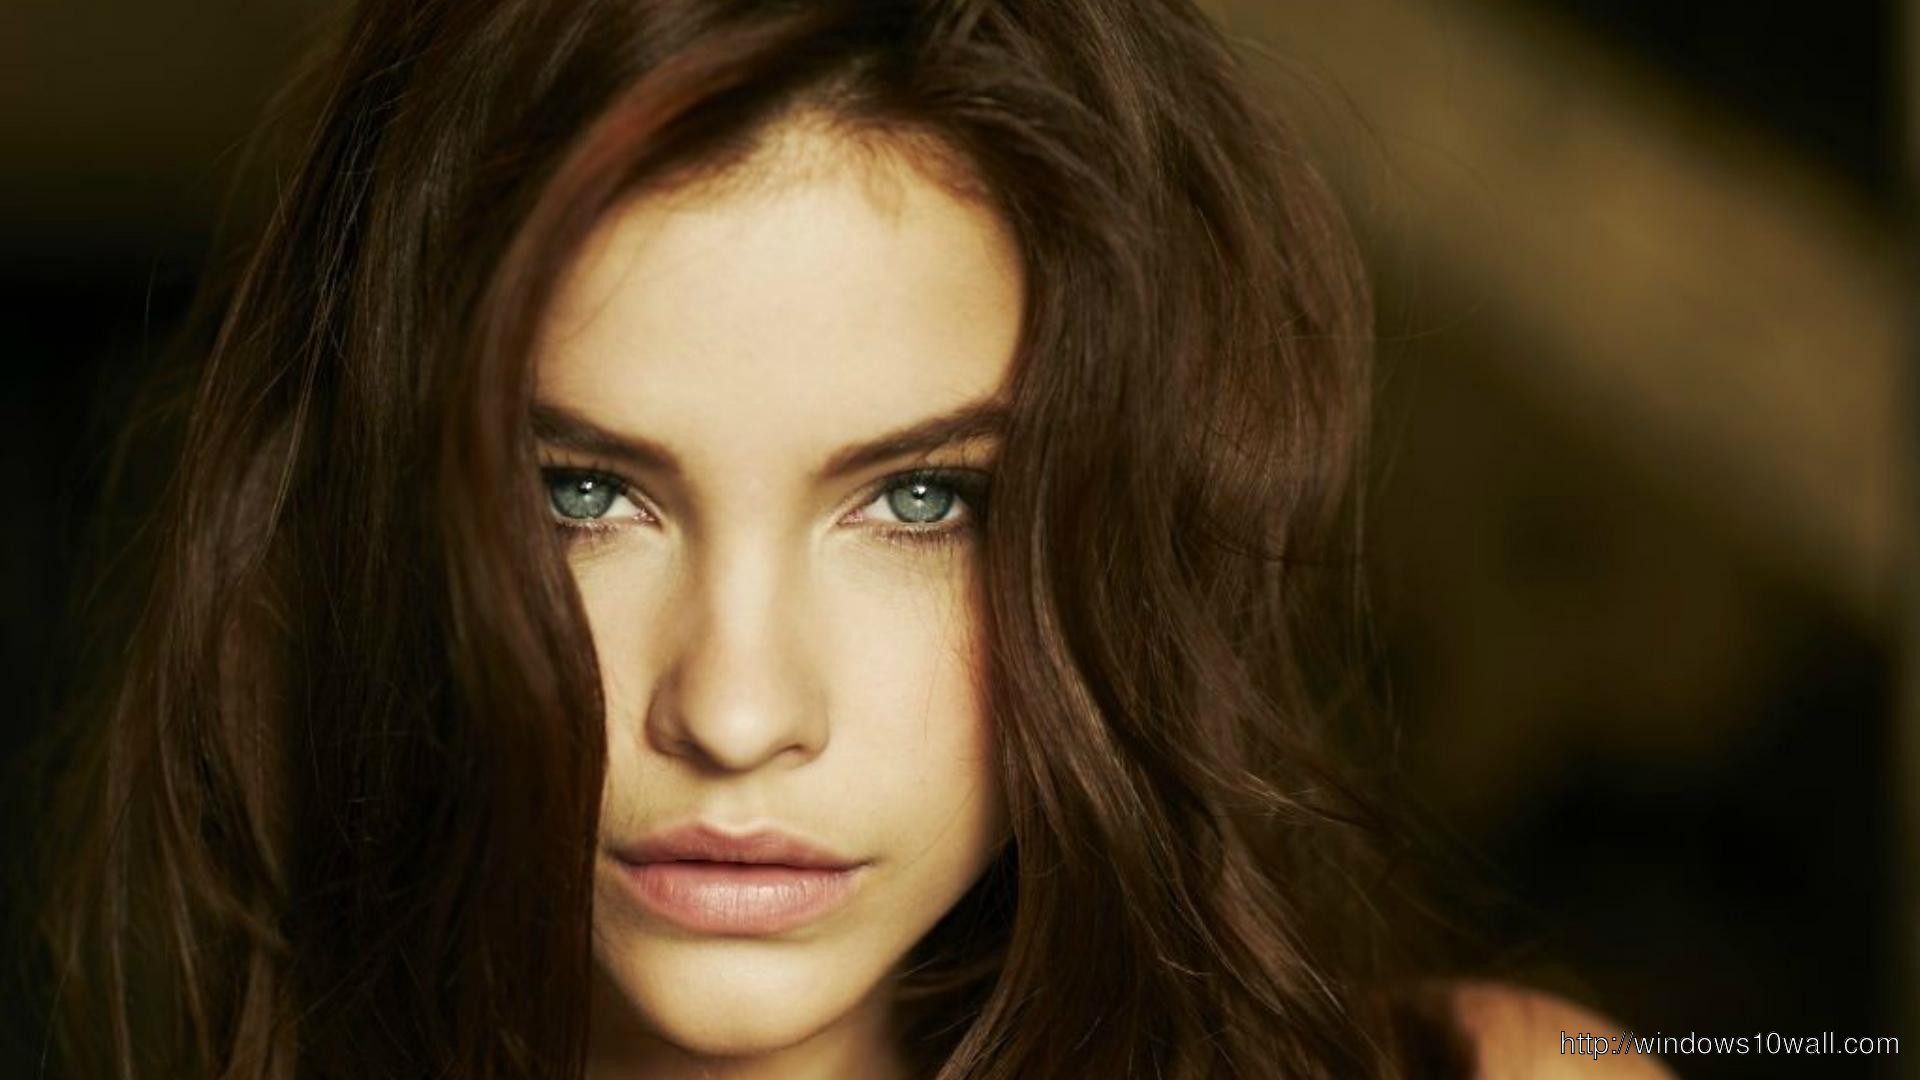 Barbara Palvin Face Wallpaper